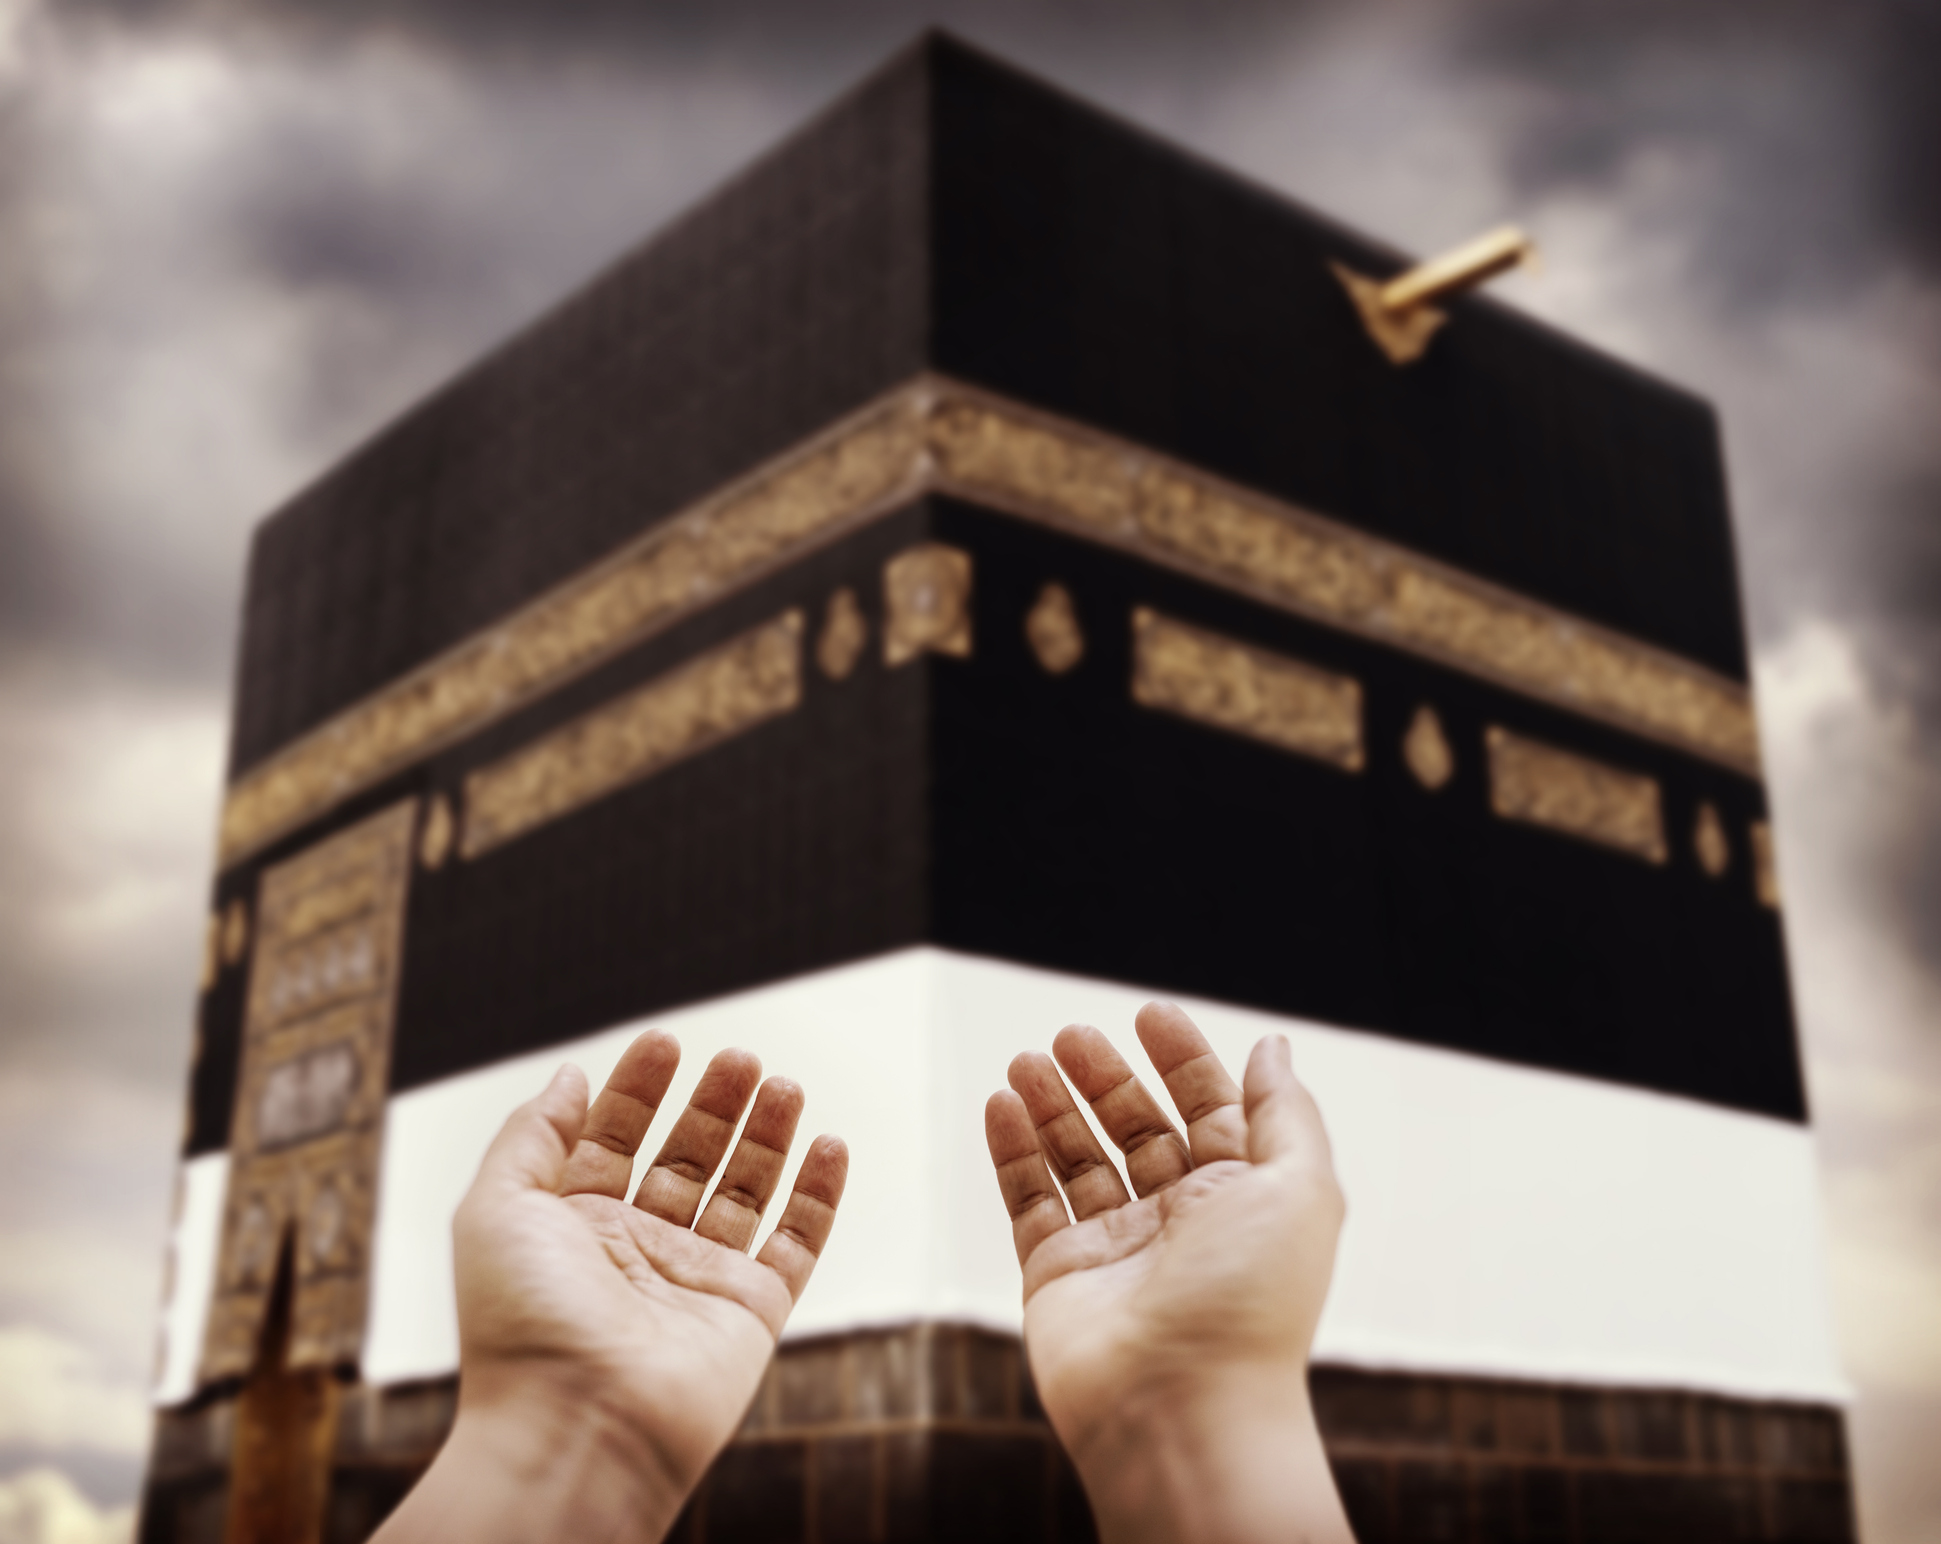 Dhul Hijjah is the month of the Hajj